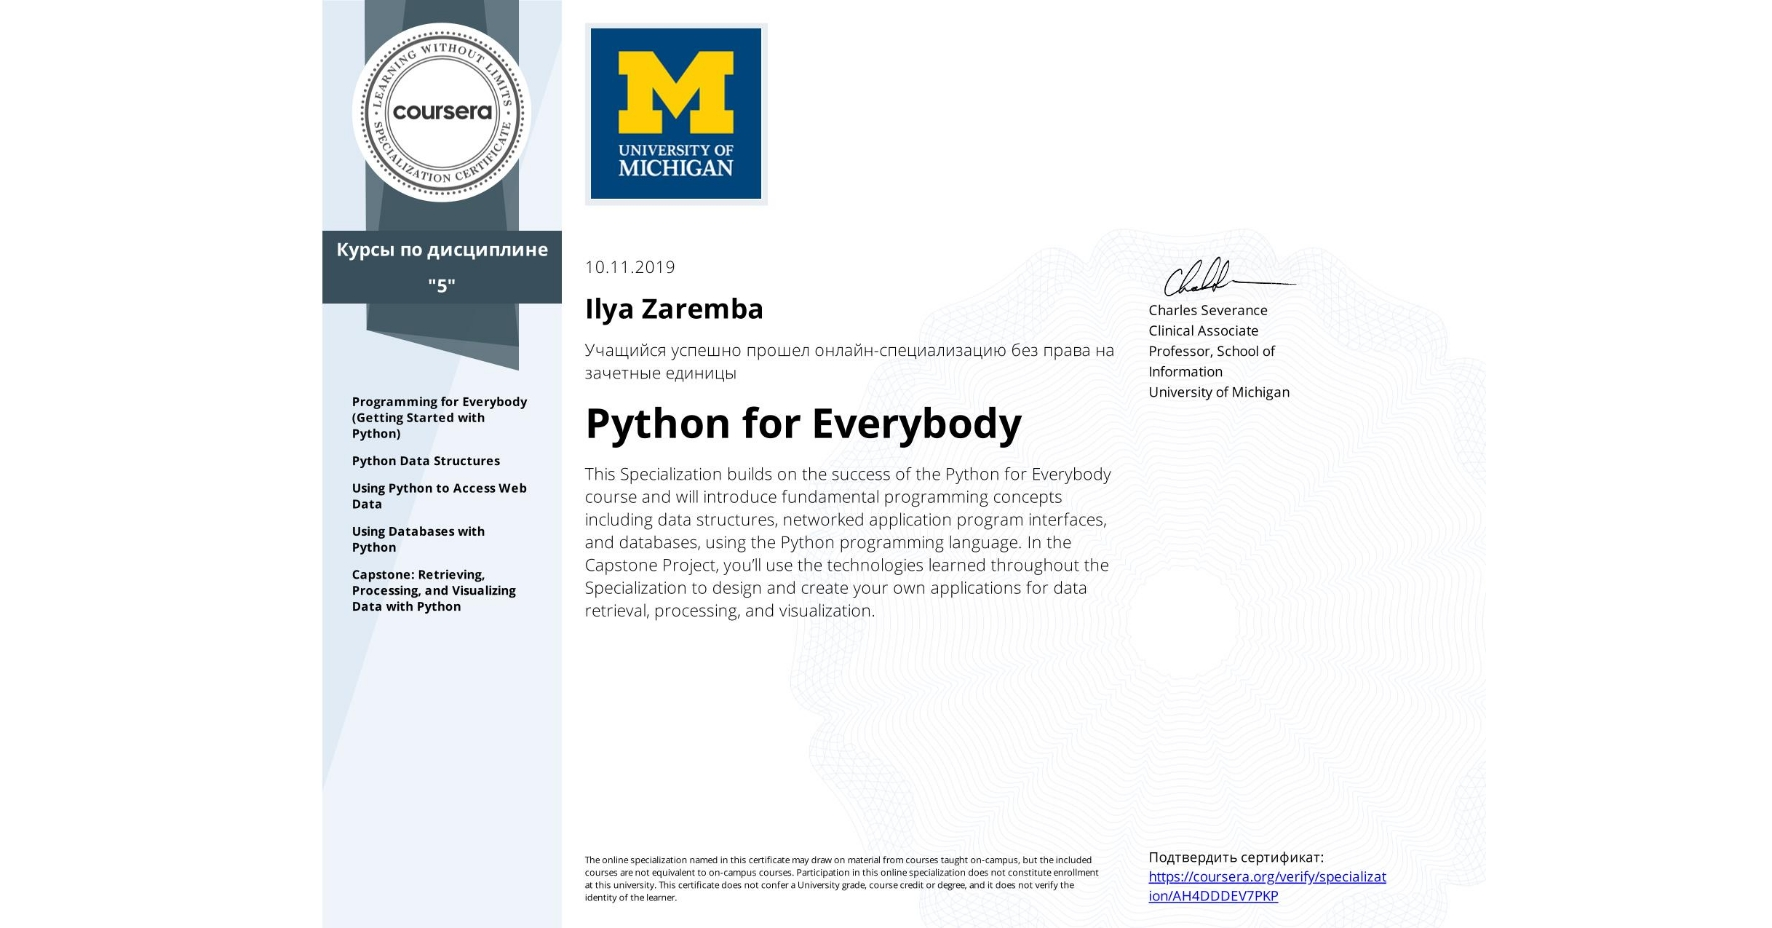 View certificate for Ilya Zaremba, Python for Everybody, offered through Coursera. This Specialization builds on the success of the Python for Everybody course and will introduce fundamental programming concepts including data structures, networked application program interfaces, and databases, using the Python programming language. In the Capstone Project, you'll use the technologies learned throughout the Specialization to design and create your own applications for data retrieval, processing, and visualization.